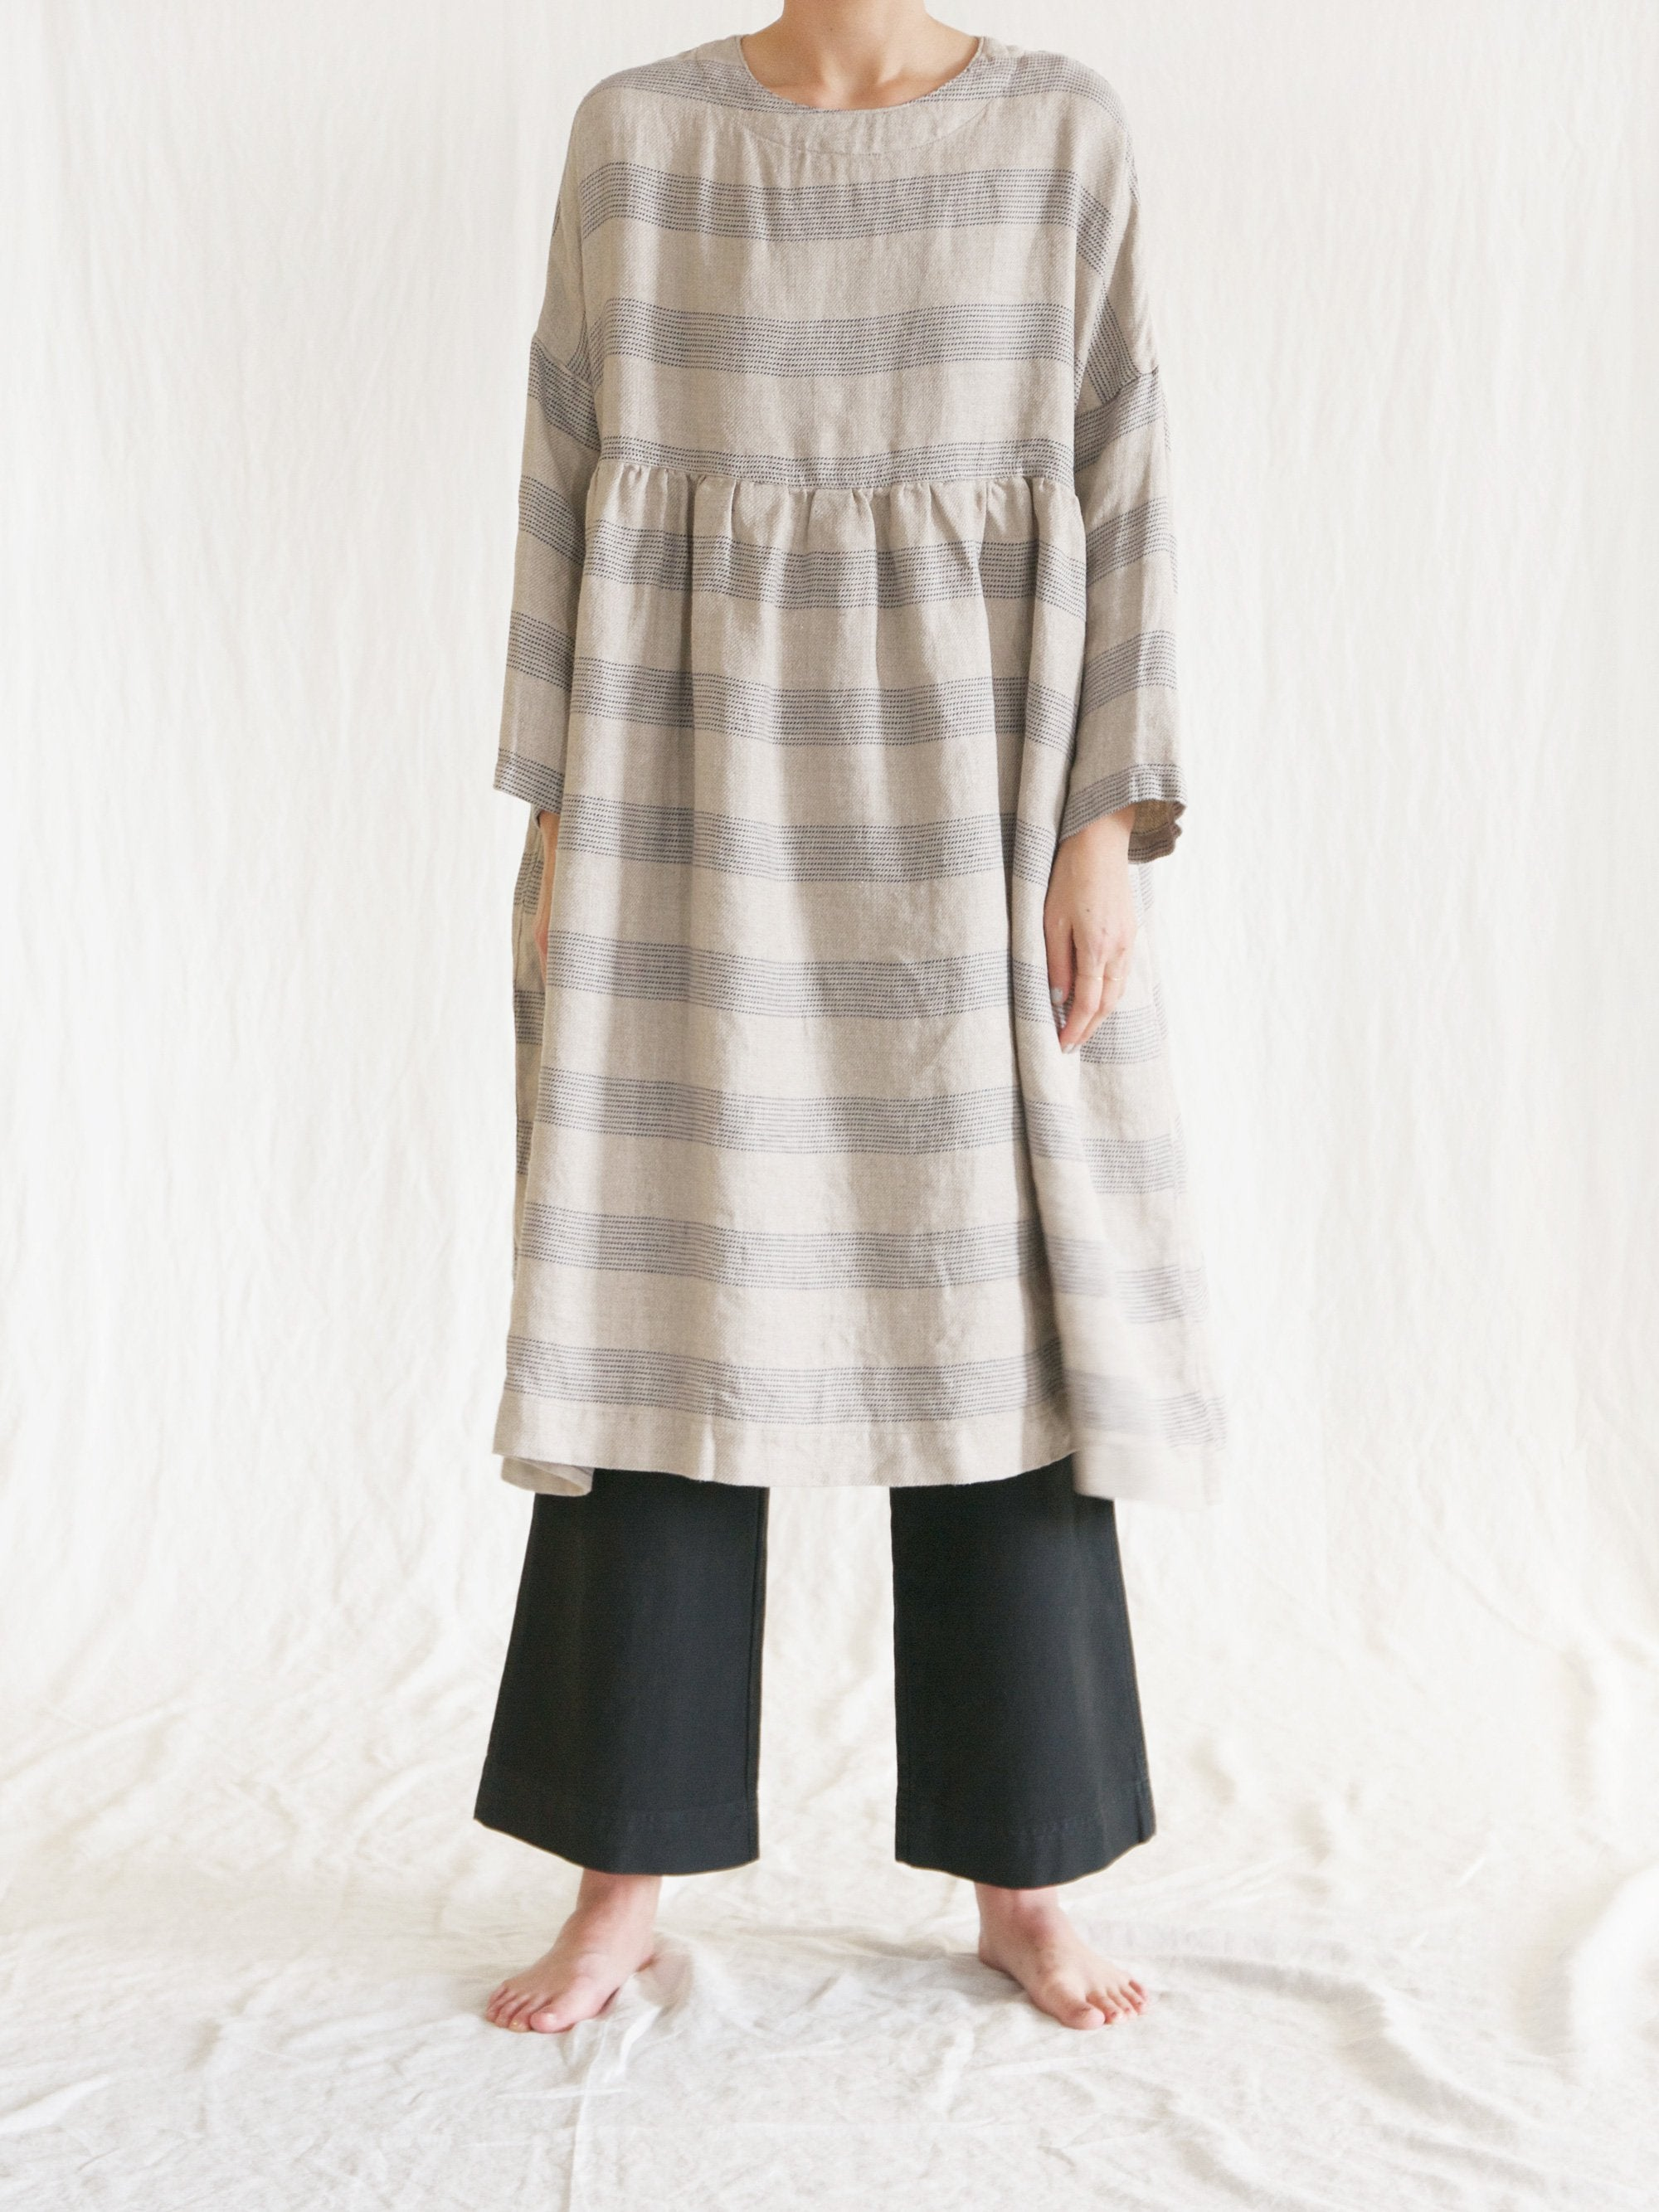 Namu Shop - Ichi Antiquites Linen Striped Gather Dress